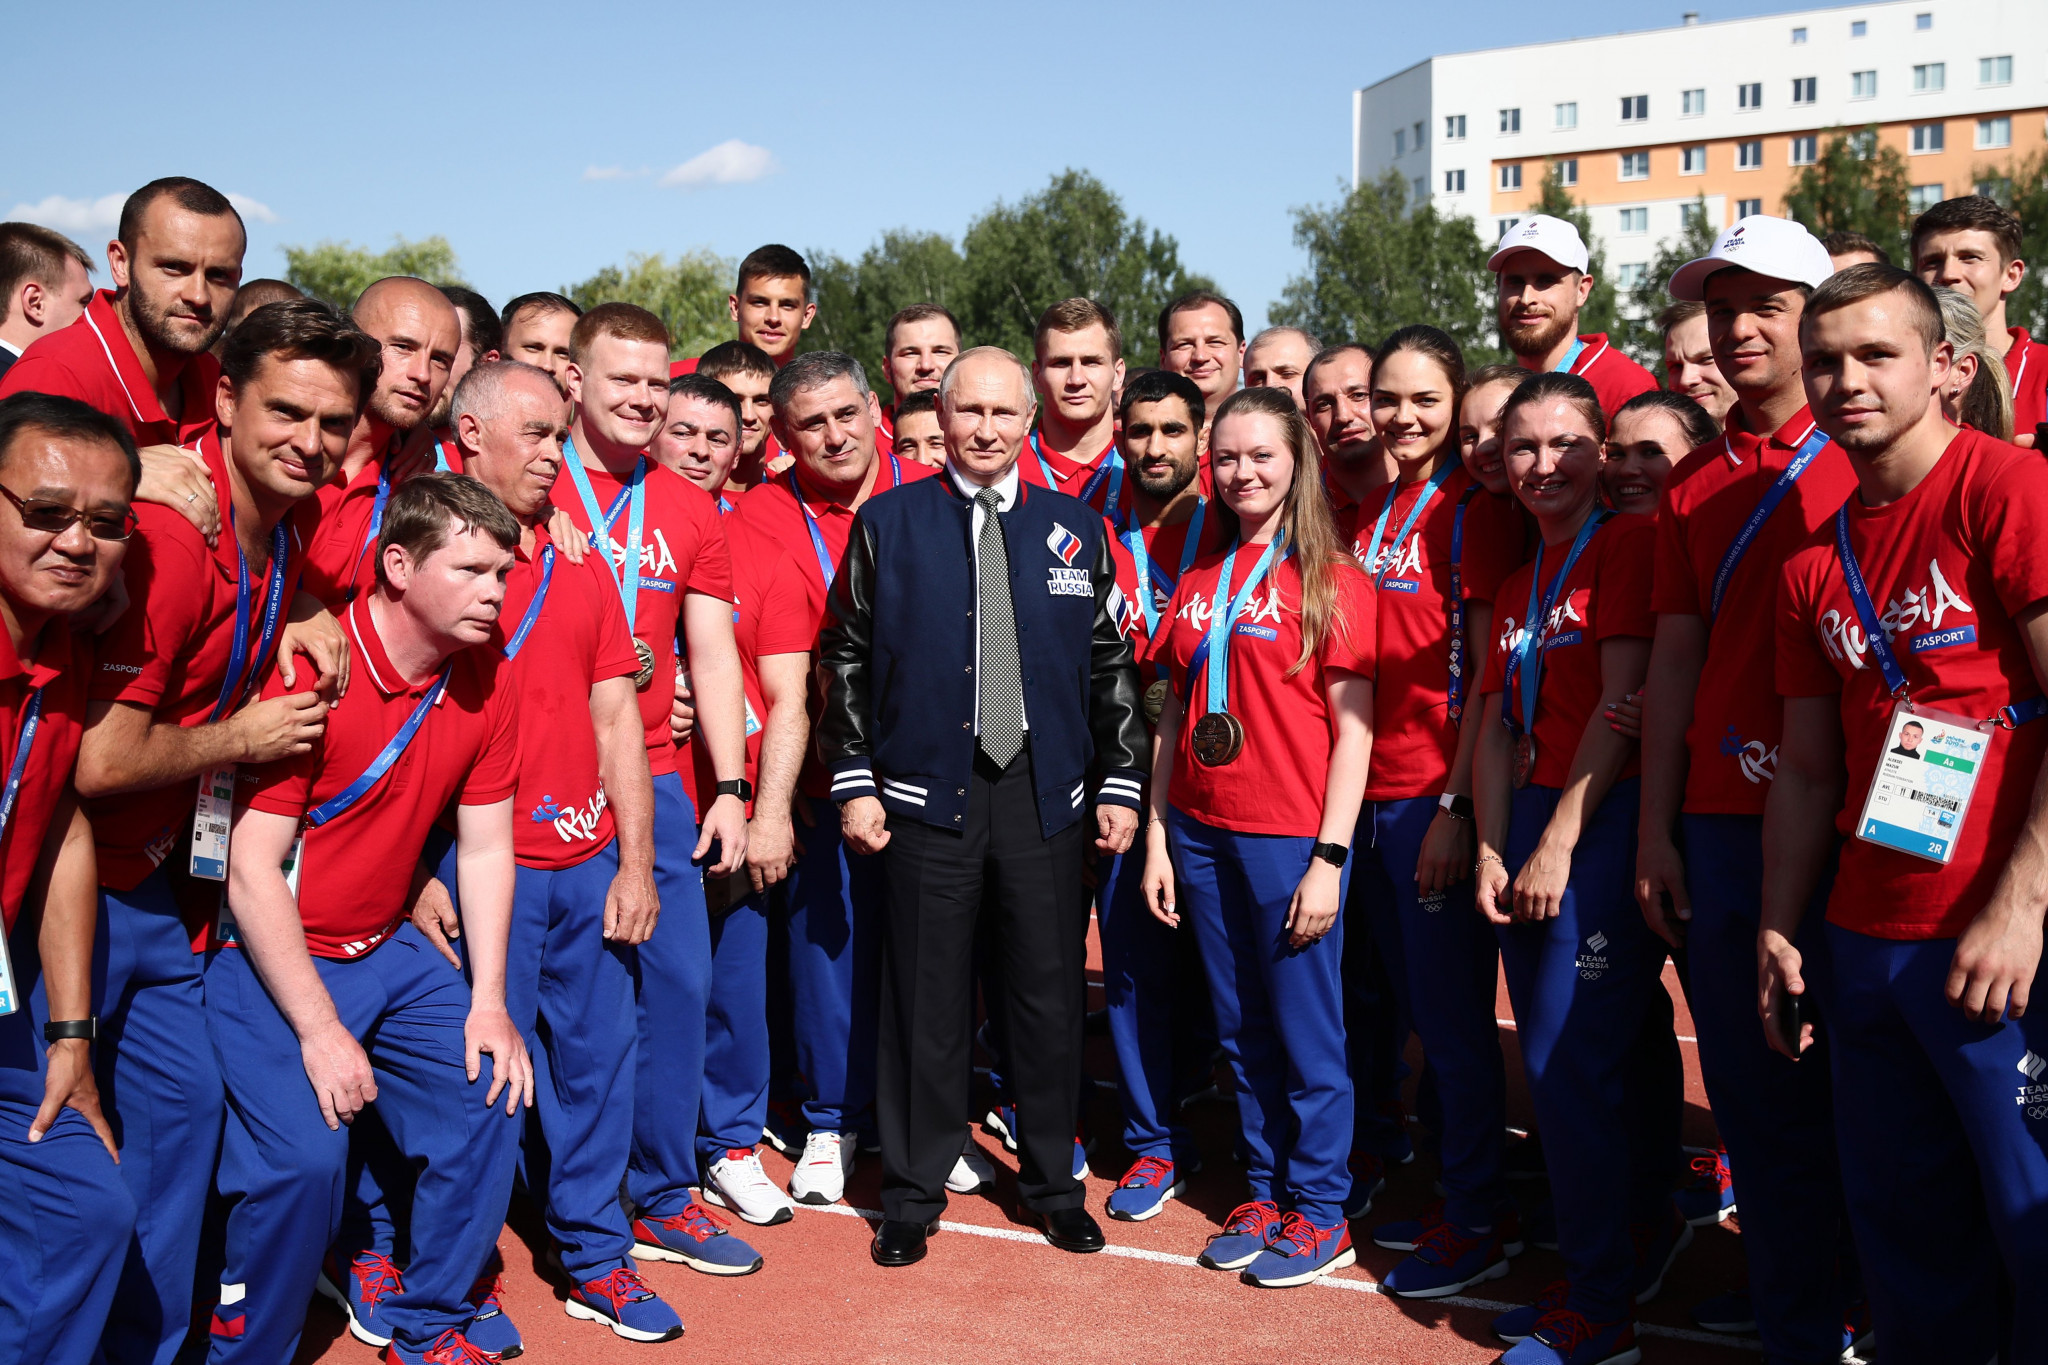 Russian President Vladimir Putin, pictured here with athletes during the recently-concluded European Games in Minsk, has ordered the ROC to ensure the IAAF ban imposed on the country is lifted by the end of the year ©Getty Images